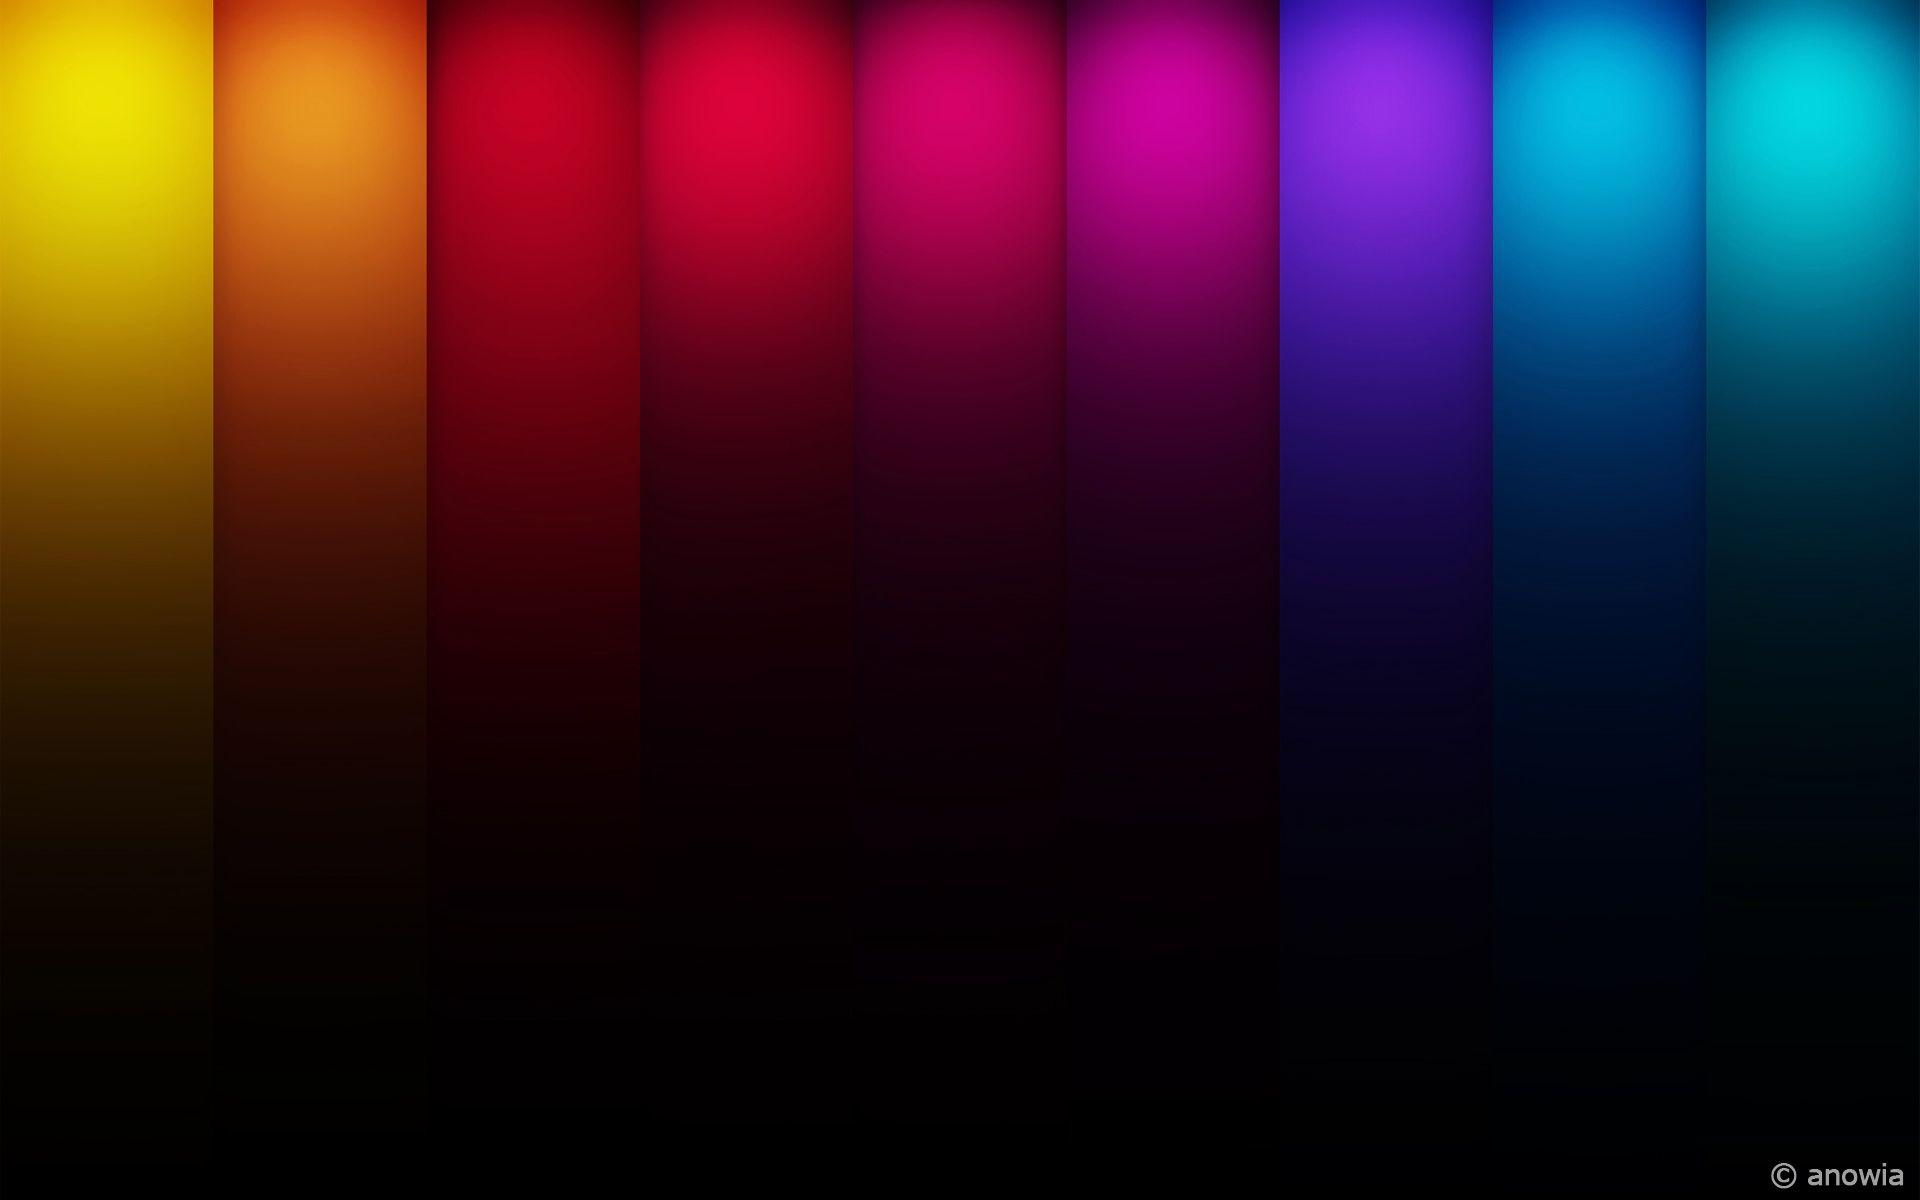 colorful wallpapers hd wallpaper cave